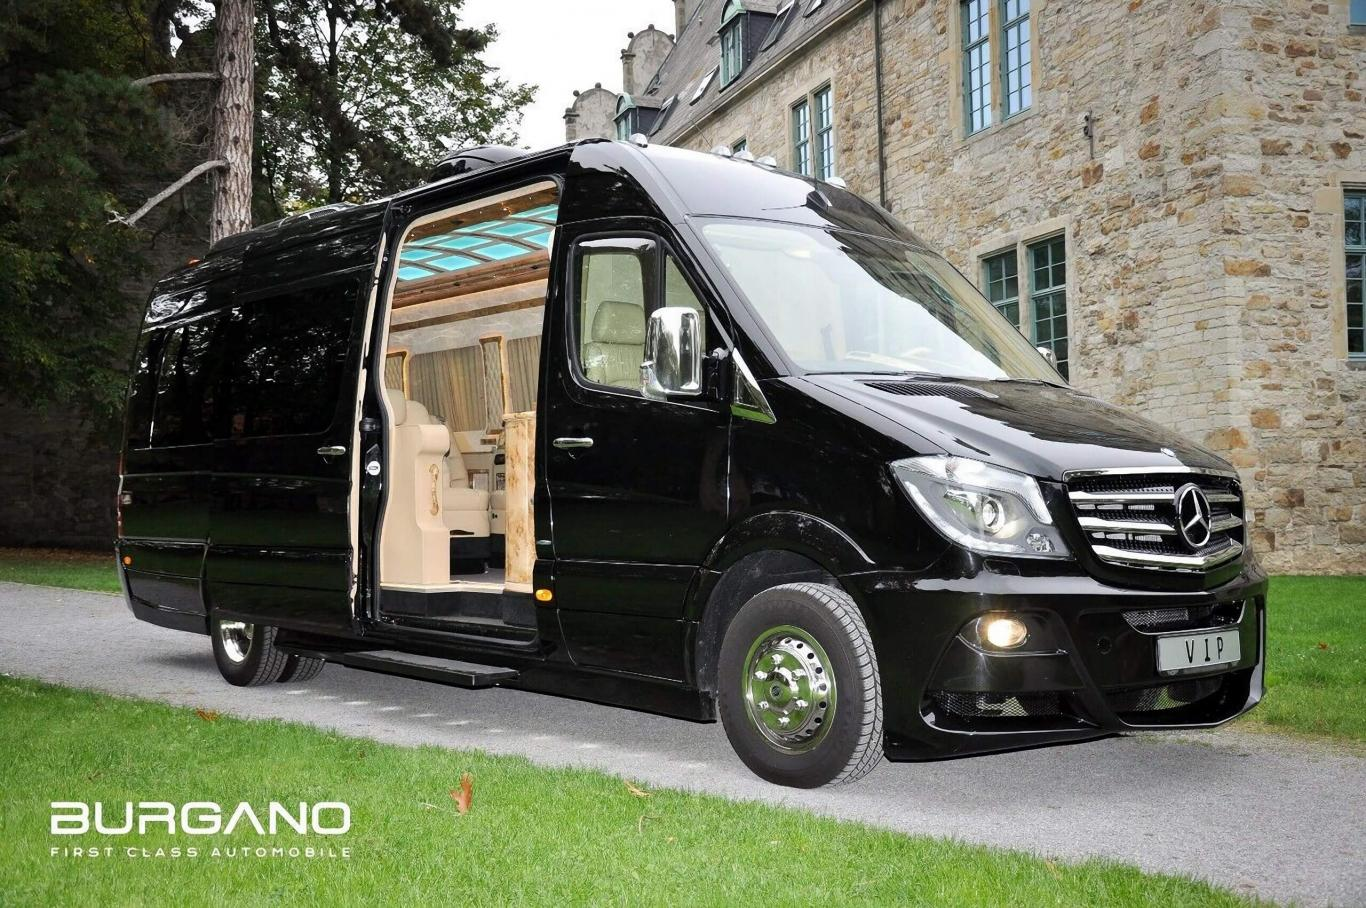 Mercedes Benz Sprinter >> Mercedes Benz Sprinter 519 516 Luxury Business Vip Van Tv 524